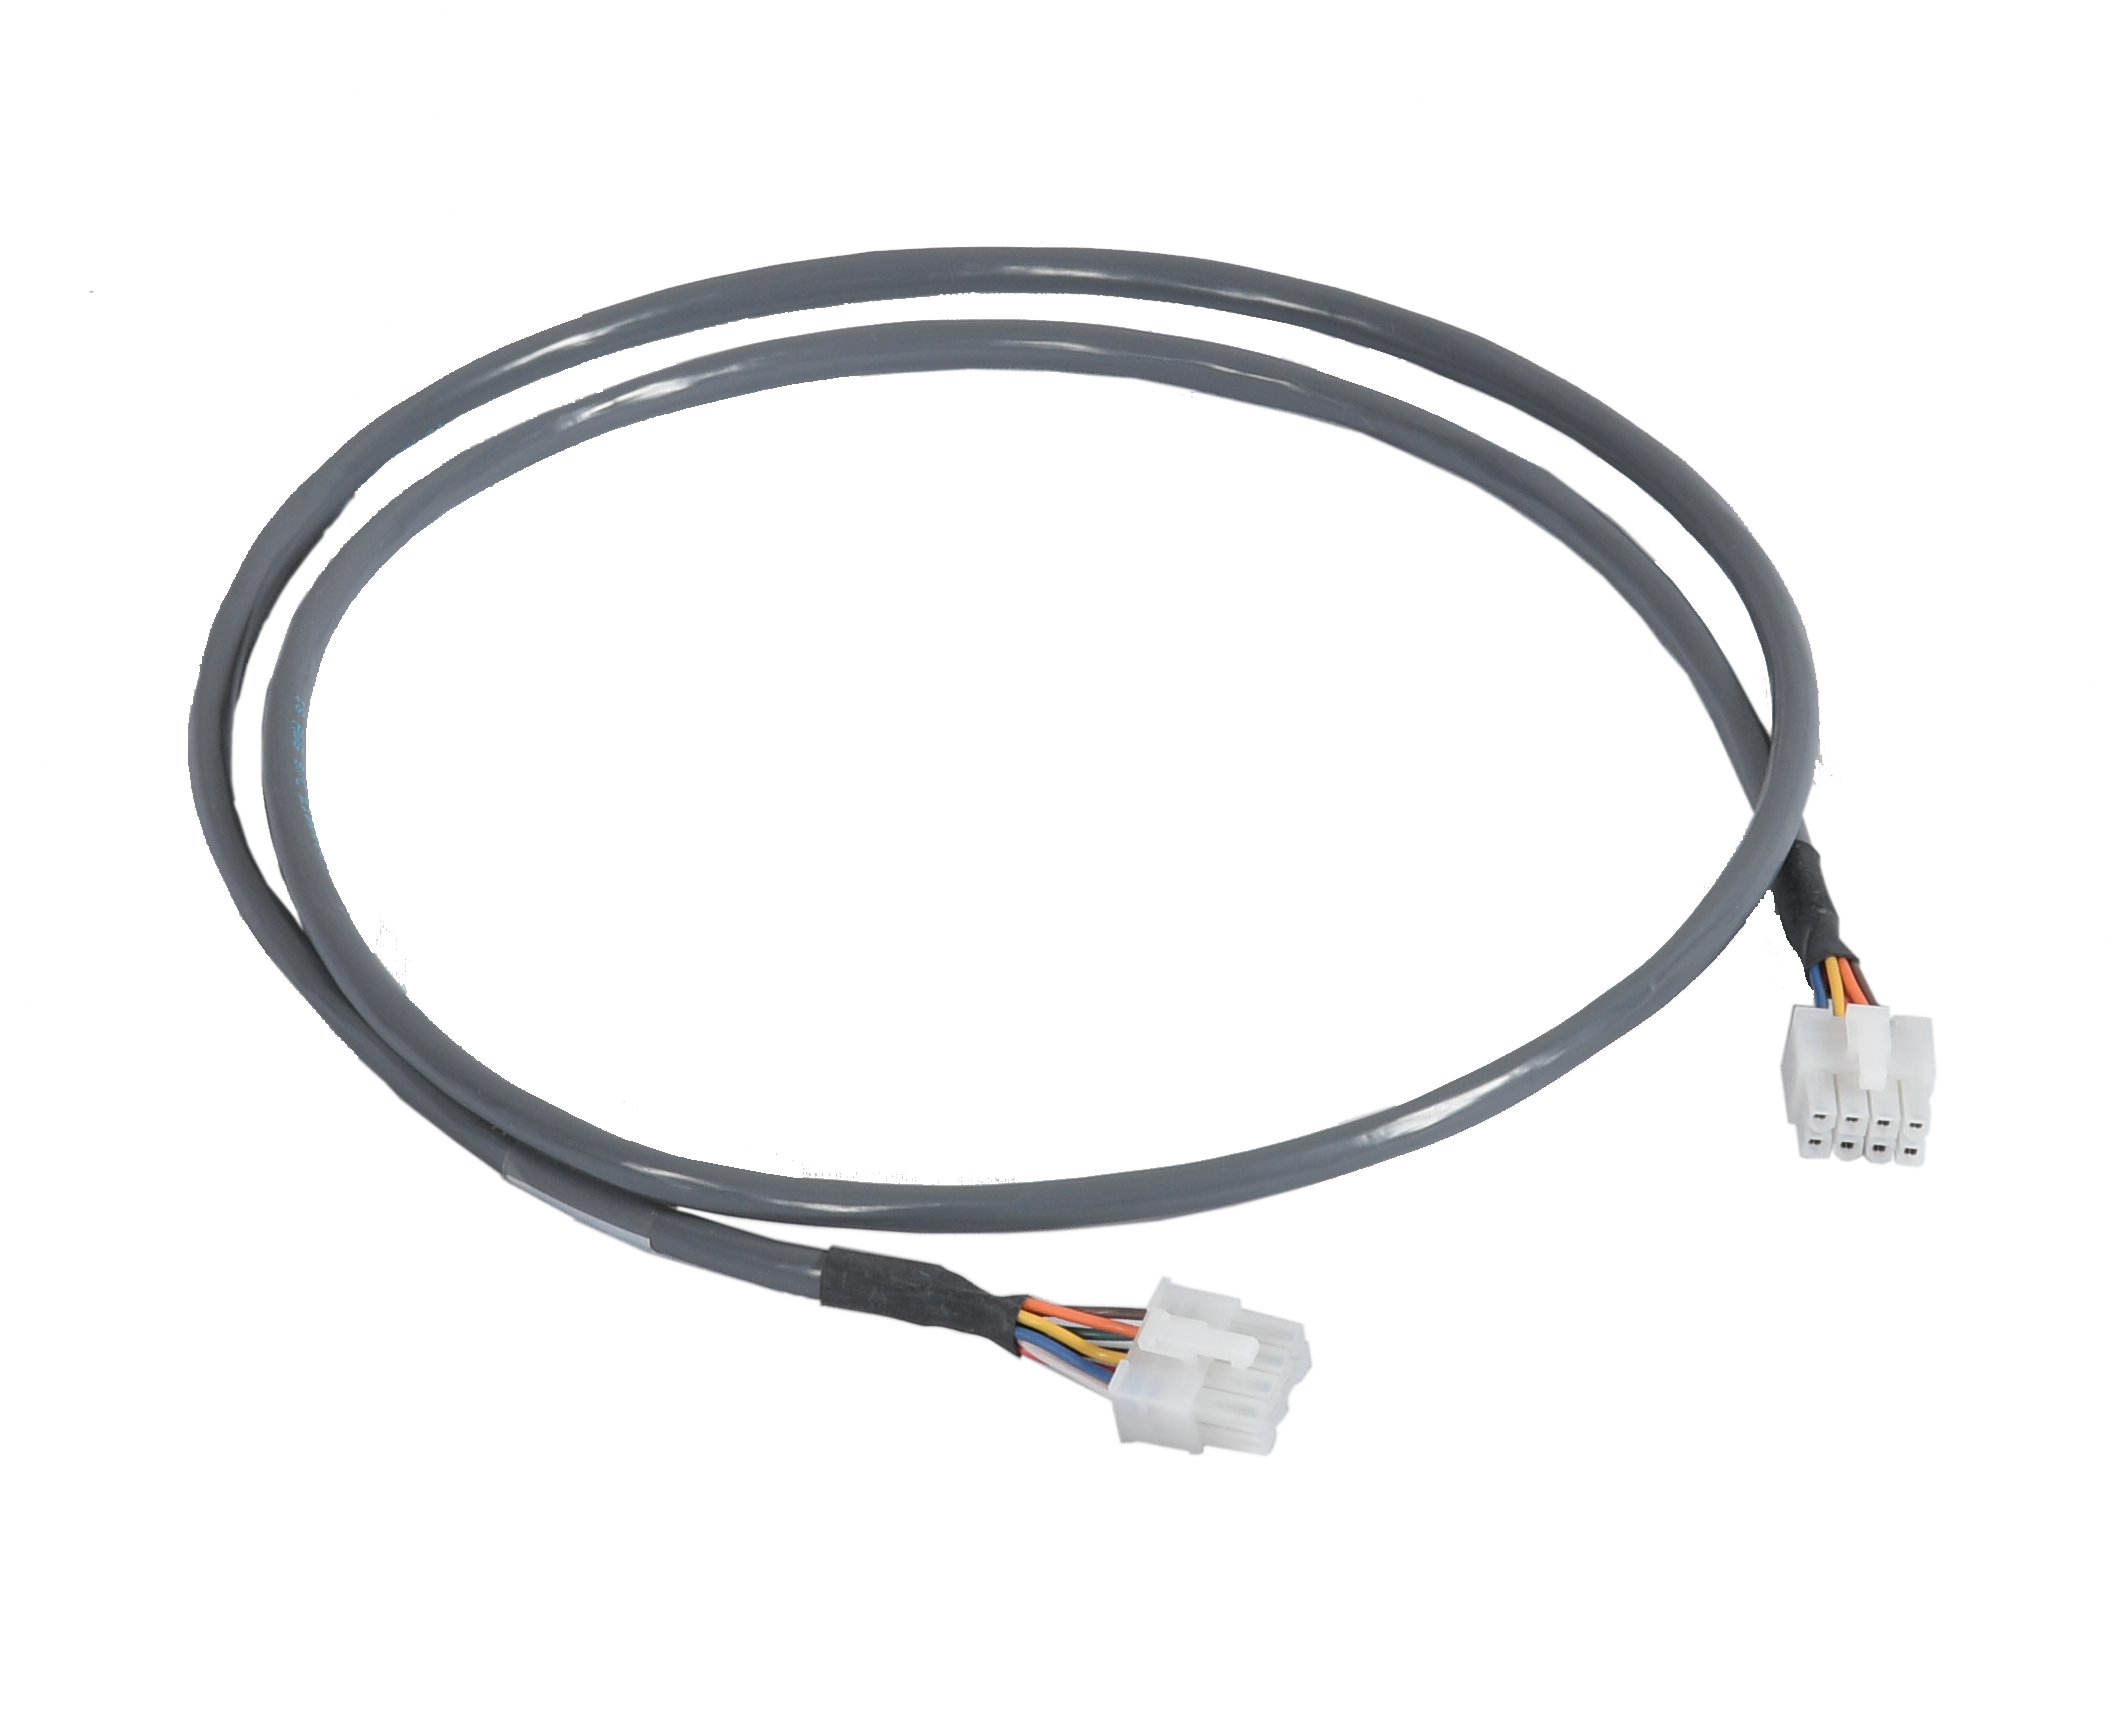 8-Conductor Through the Mount Power Cable